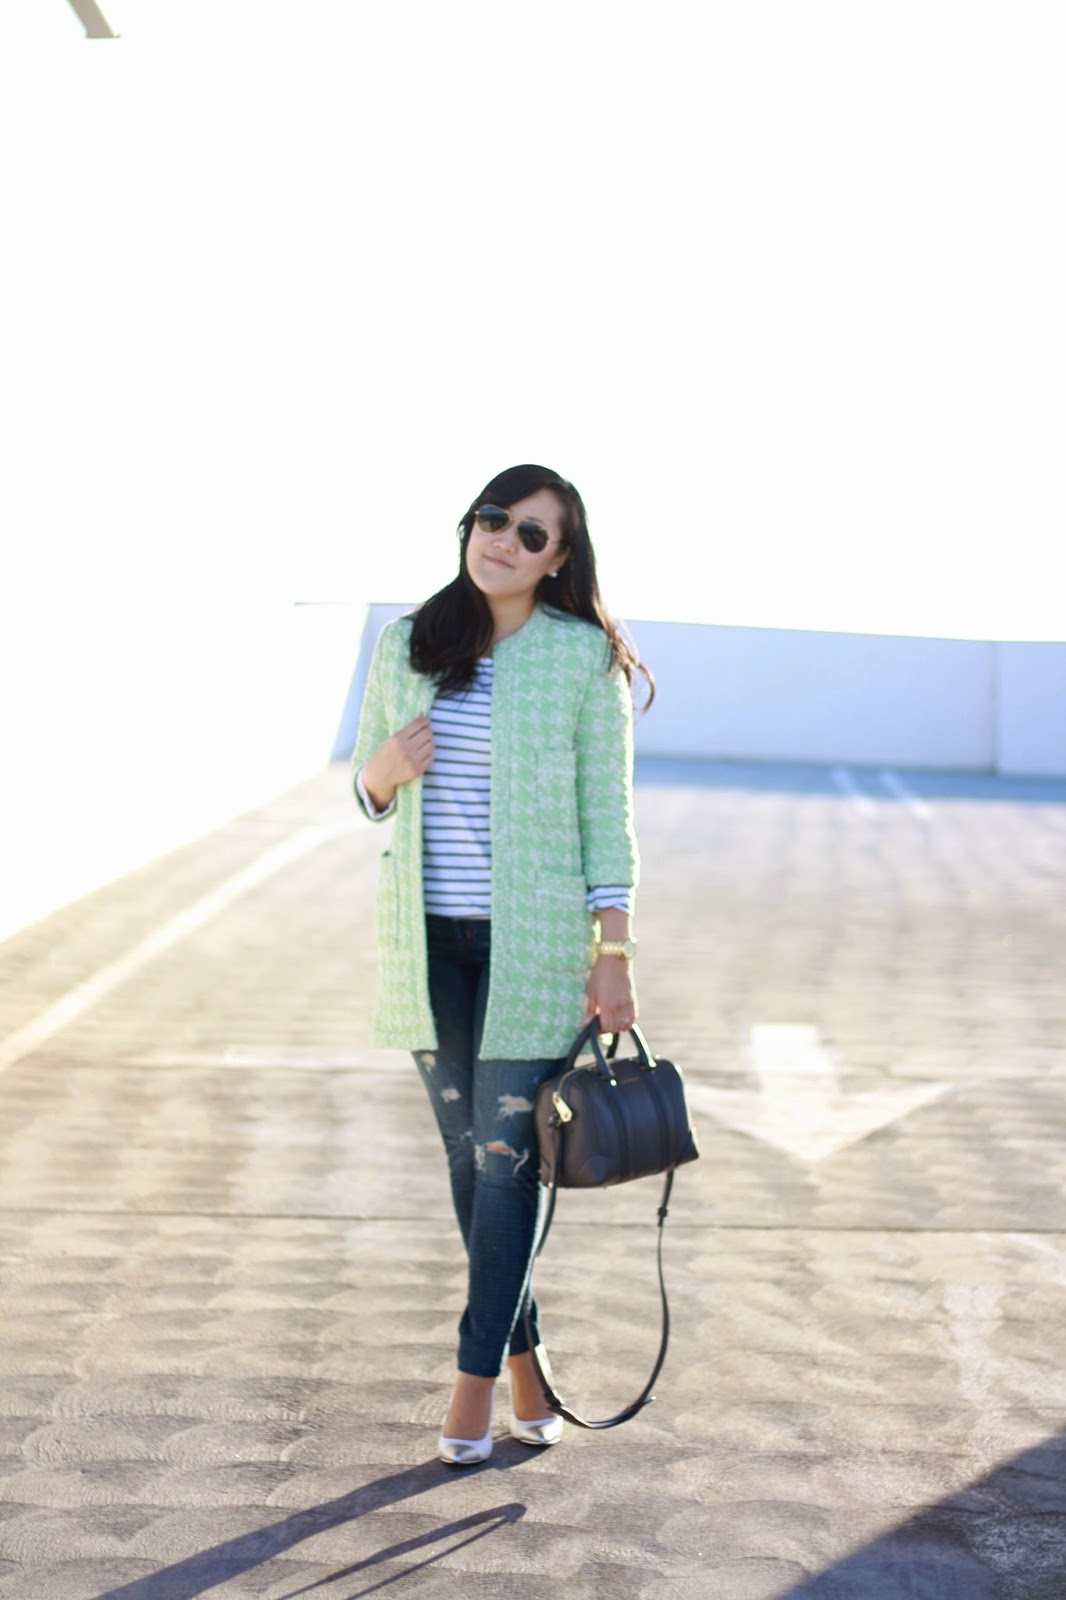 simplyxclassic, blogger, orange county, style blogger, fashion blogger, zara, mint, houndstooth, rayban, michael kors, givenchy handbag, loft, mommy blogger